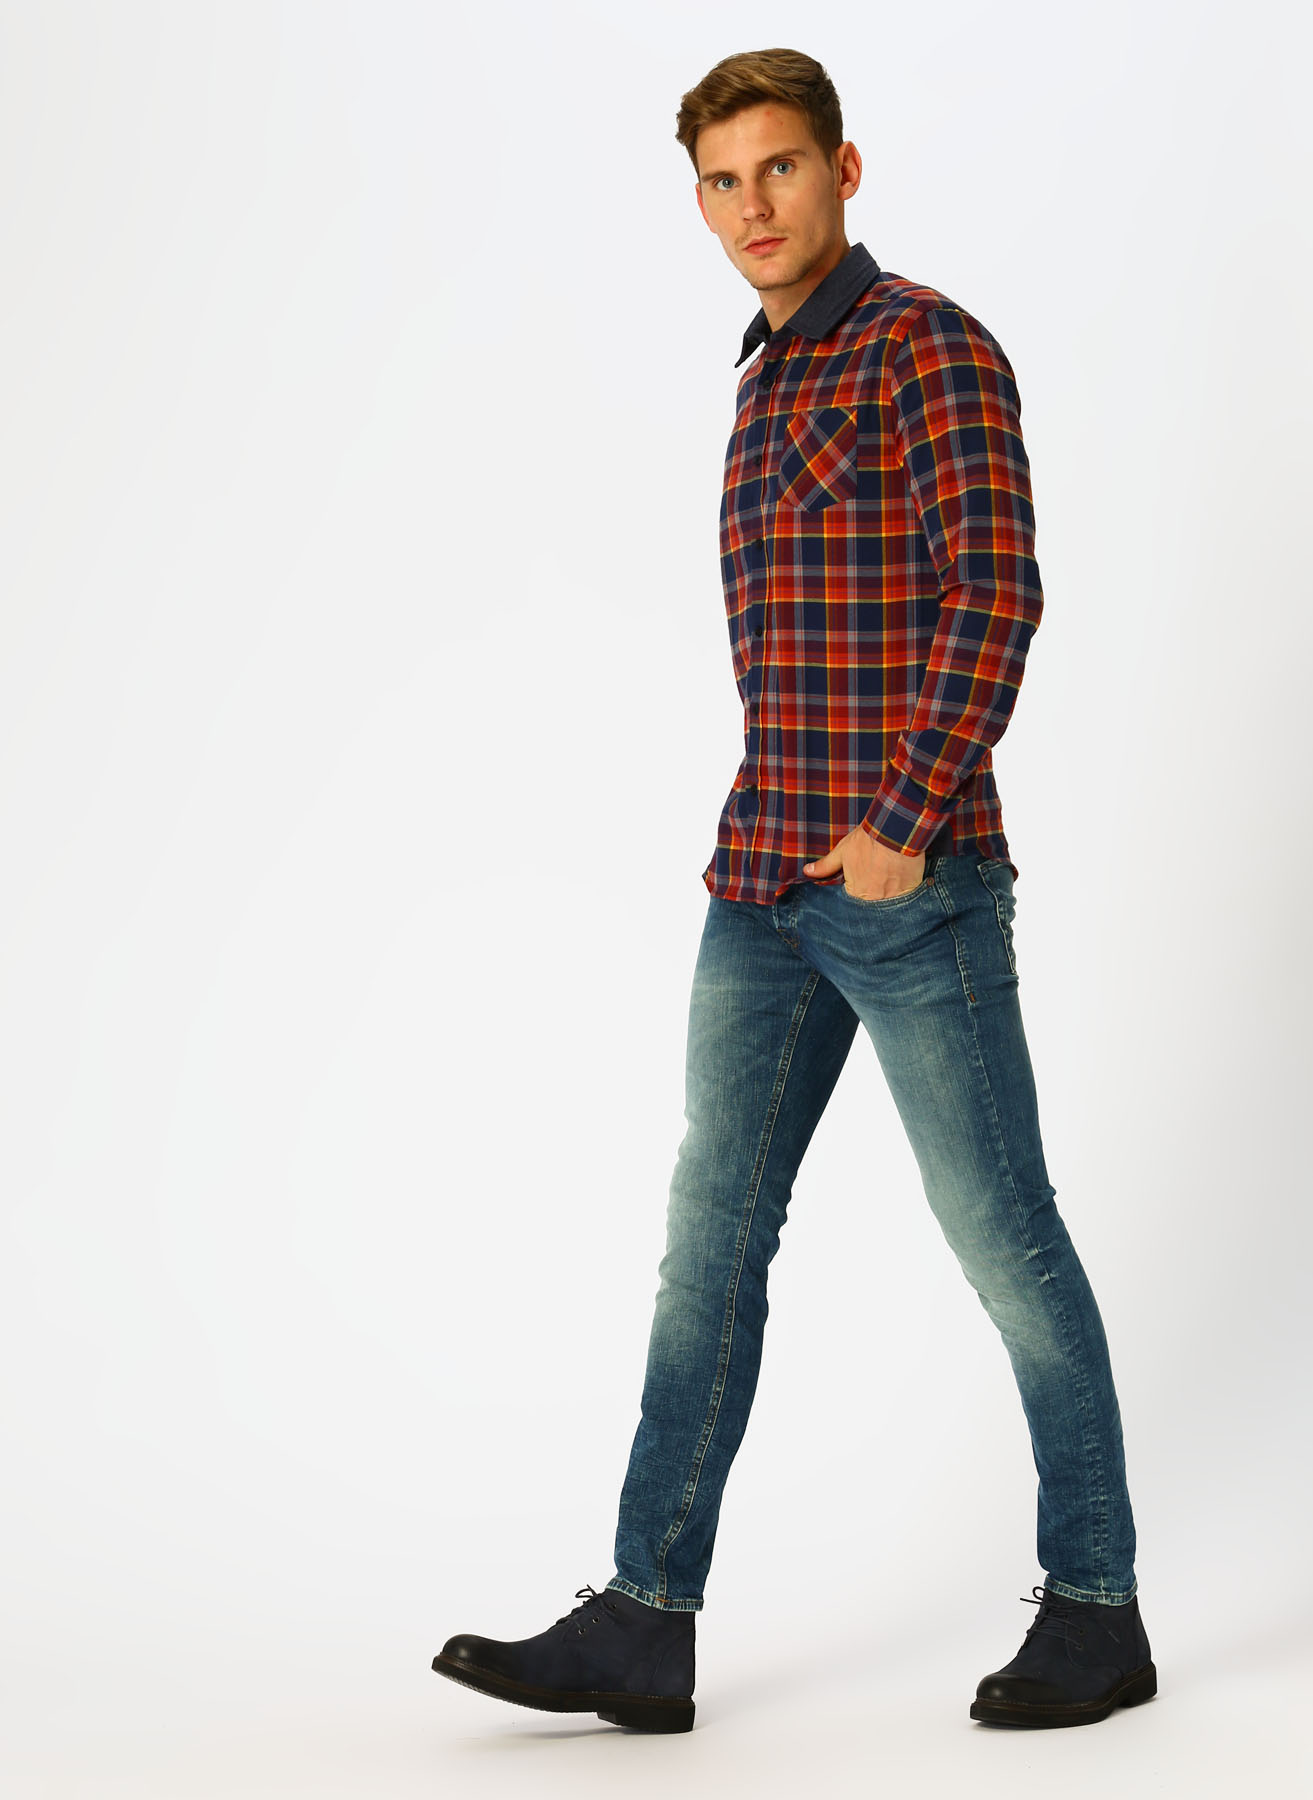 Jack & Jones Glenn Original 081 Denim Pantolon 34-32 5000196442013 Ürün Resmi